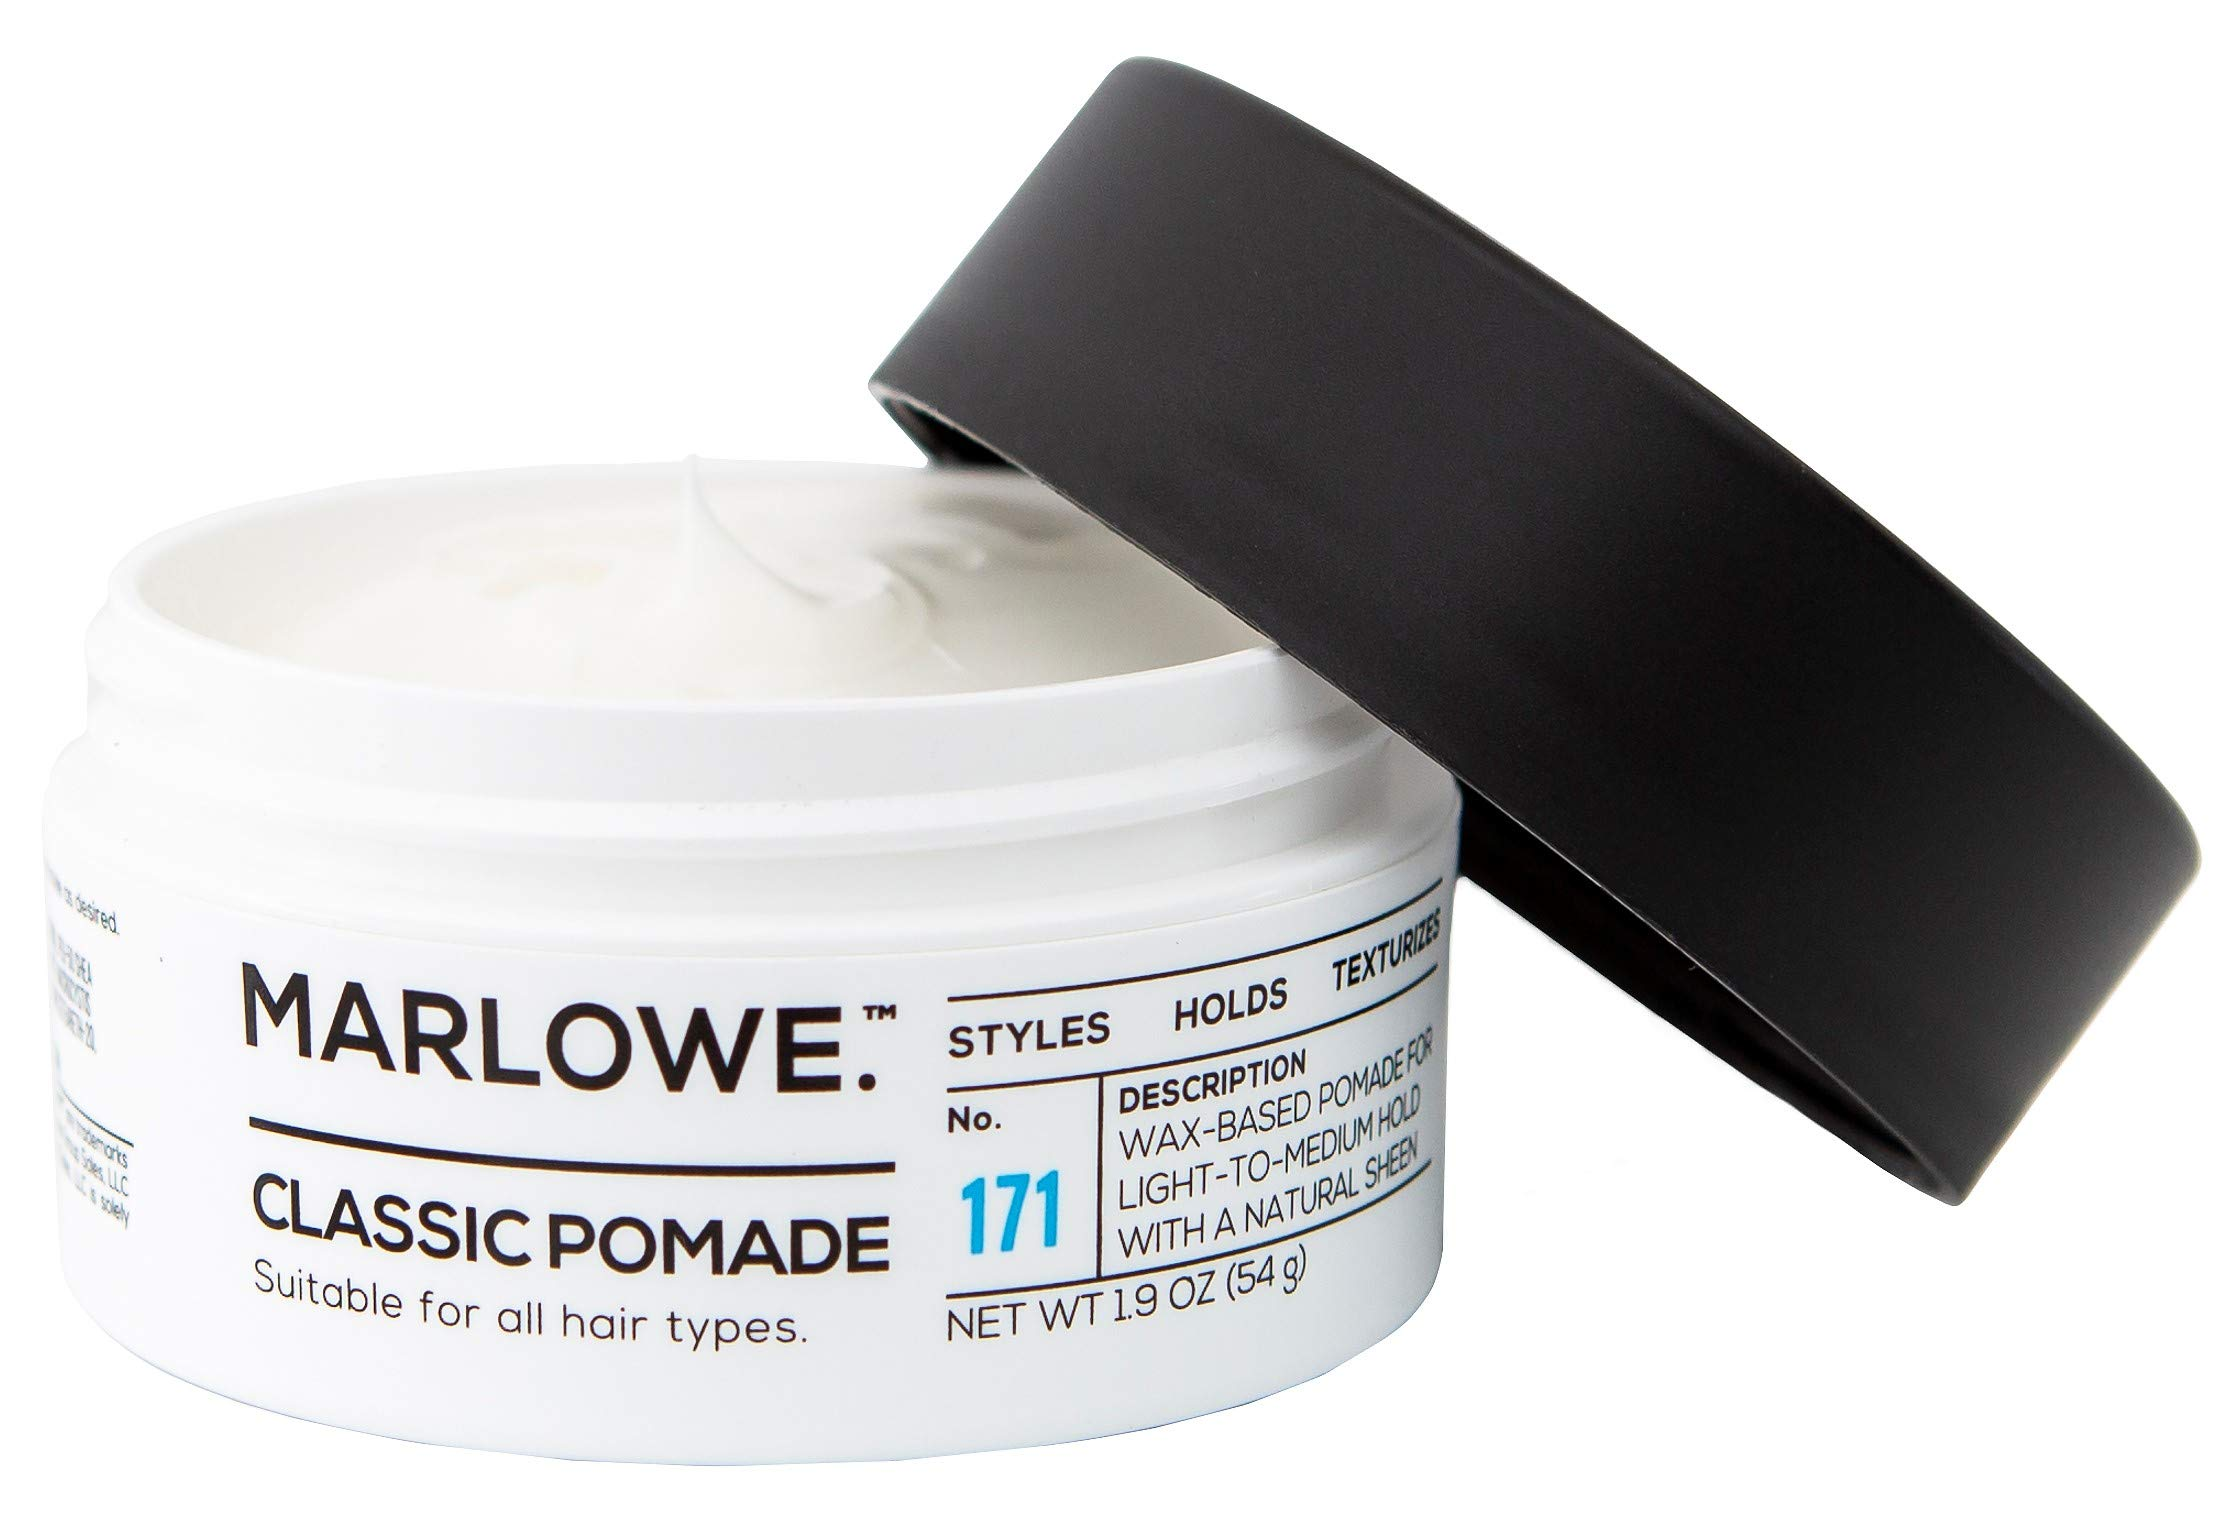 MARLOWE. Classic Pomade for Men No. 171 | 1.9 oz | Light to Medium Hold | Matte Finish | Styles, Holds, Texturizes with Natural Ingredients | All Hair Types by MARLOWE. M BLEND